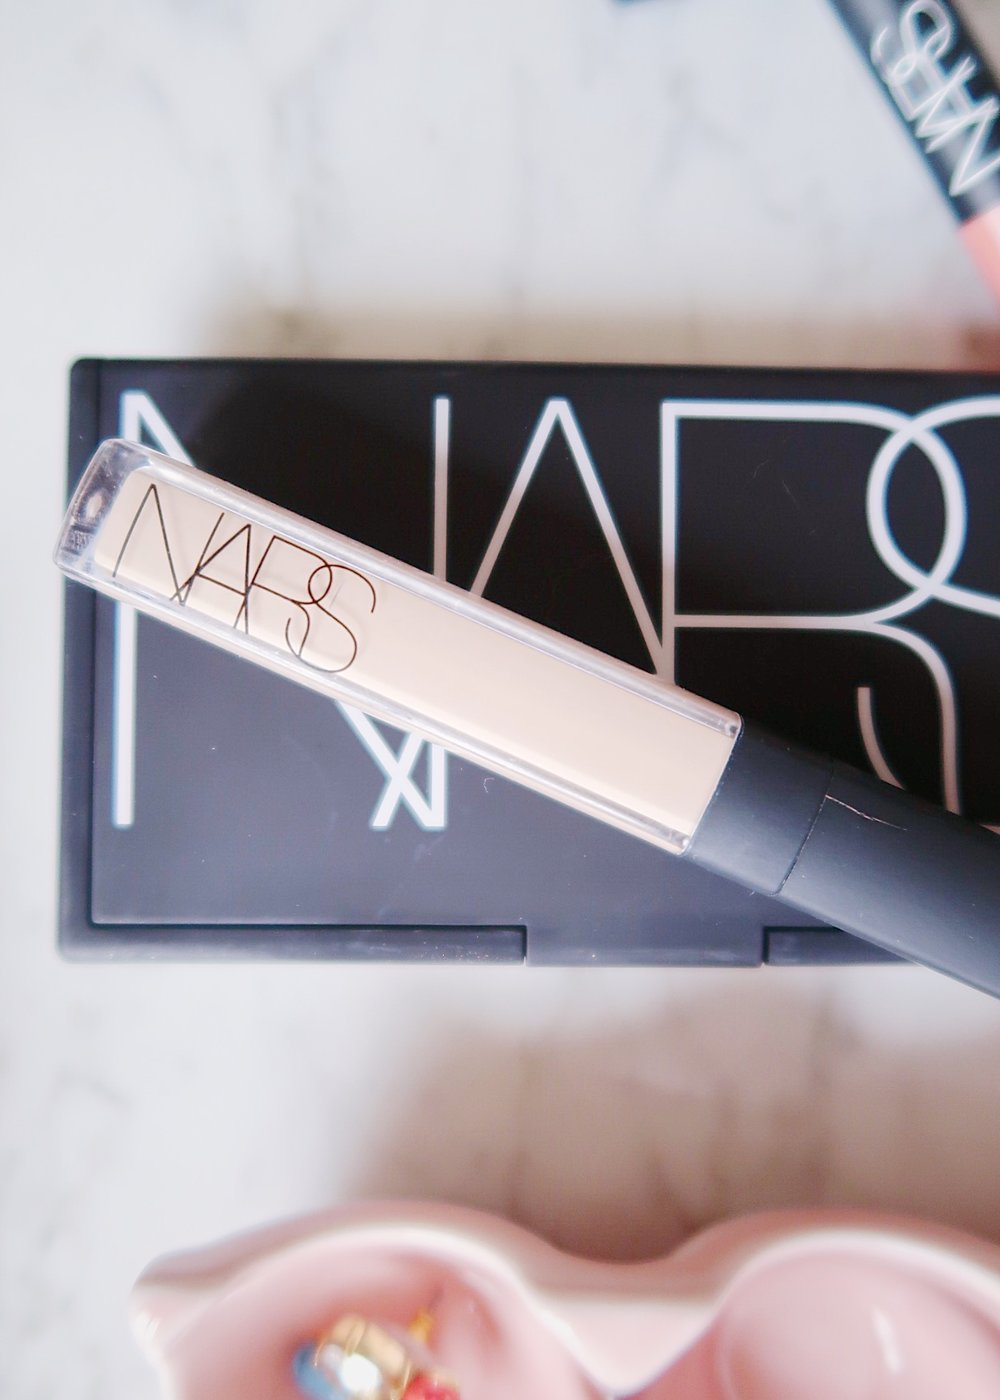 NARS - spotlight on my favorite makeup brand